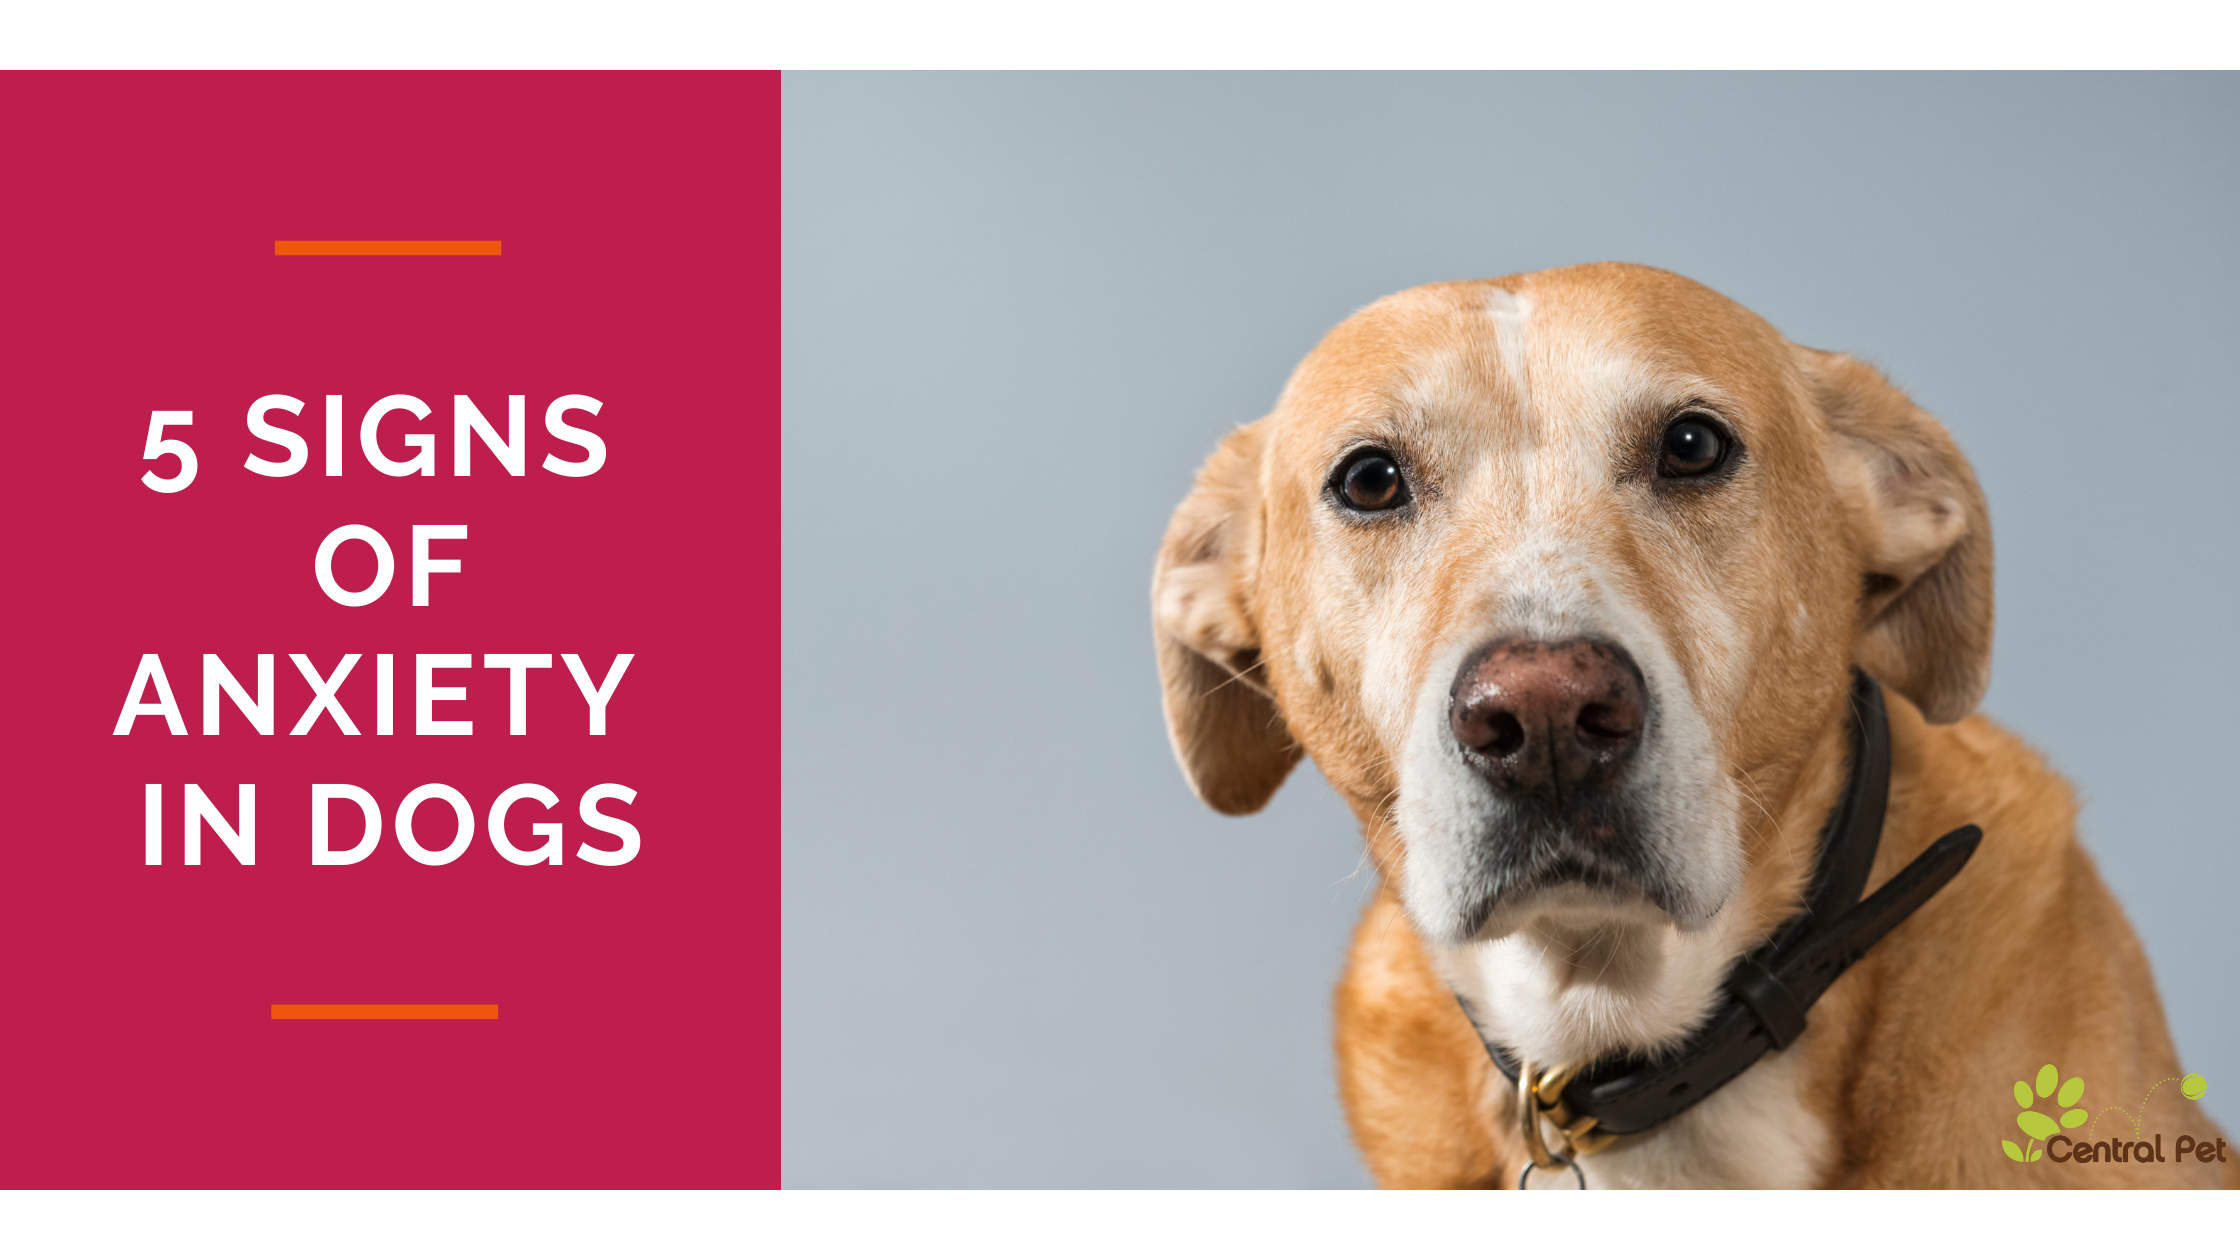 Does Your Dog Have Anxiety? 5 Signs You Might Not Expect